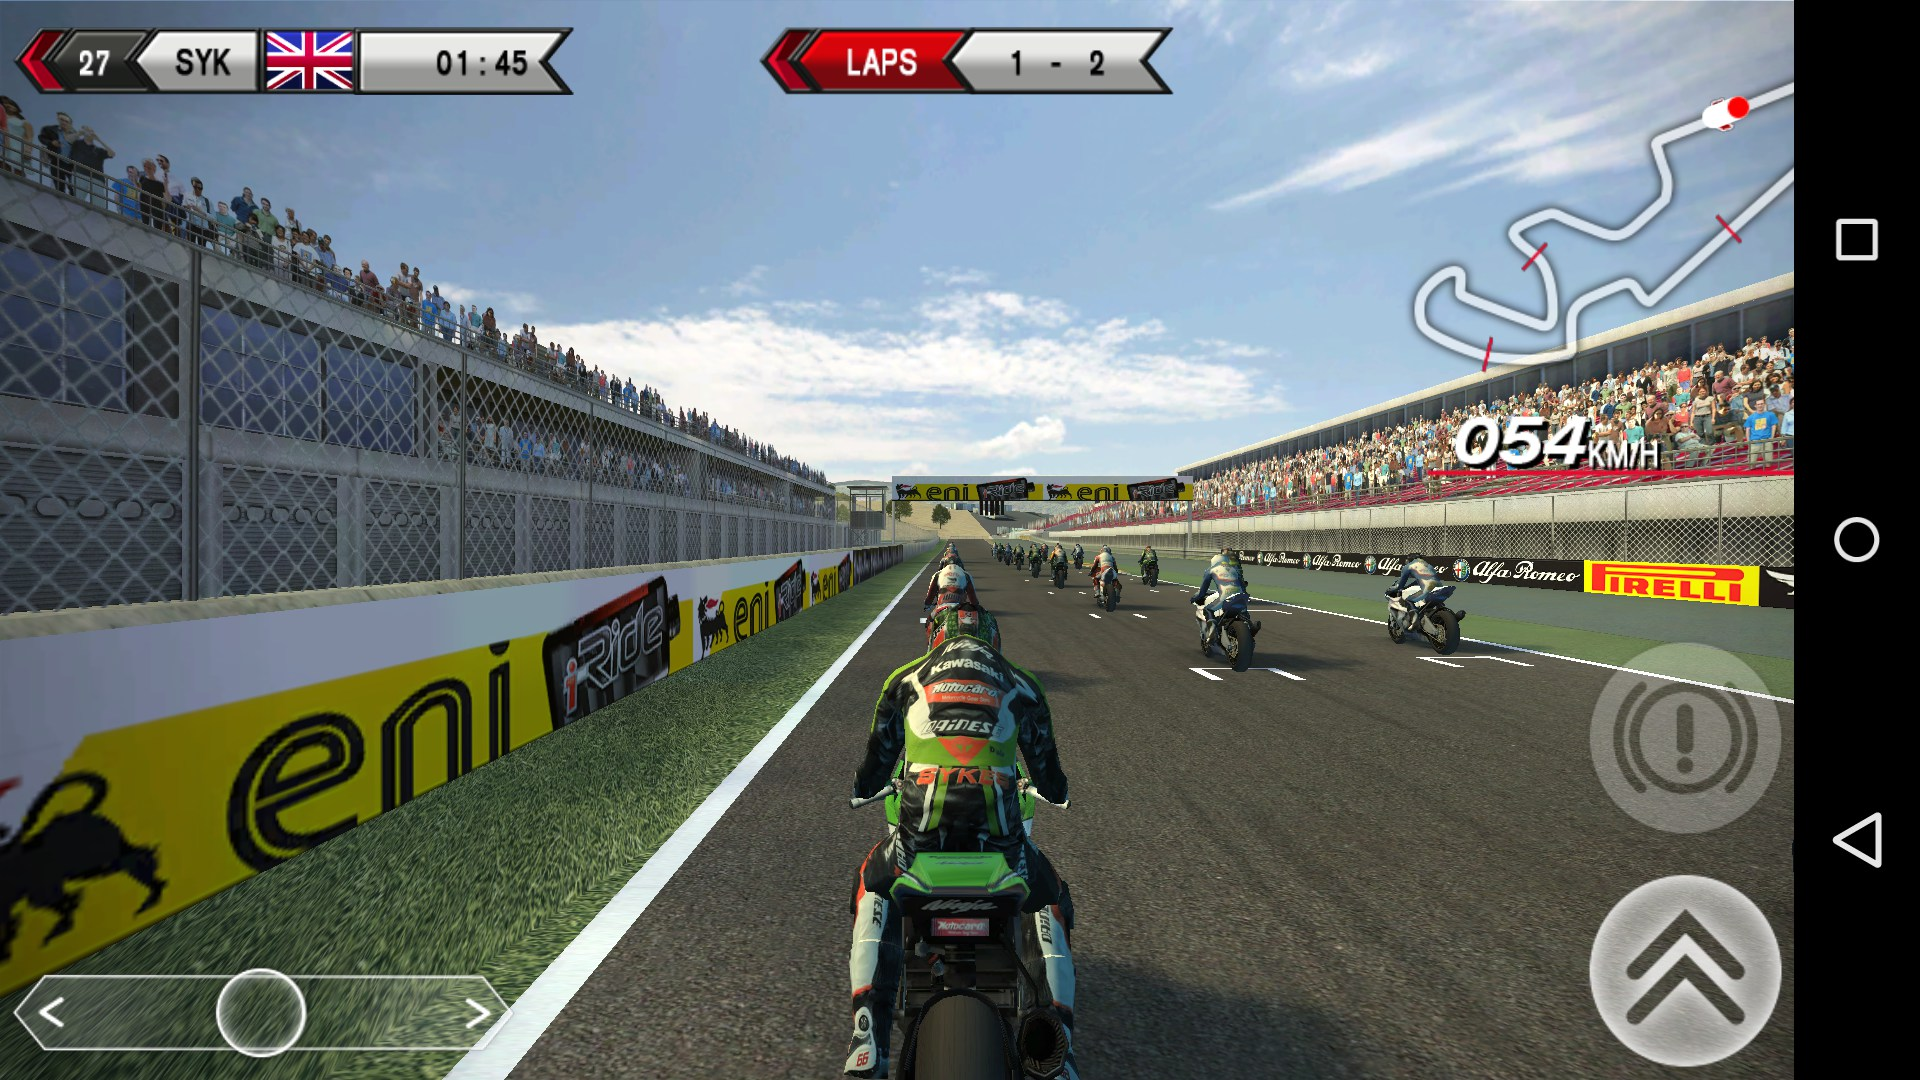 Sbk14 official mobile game for lg p350 optimus me 2018 – free.